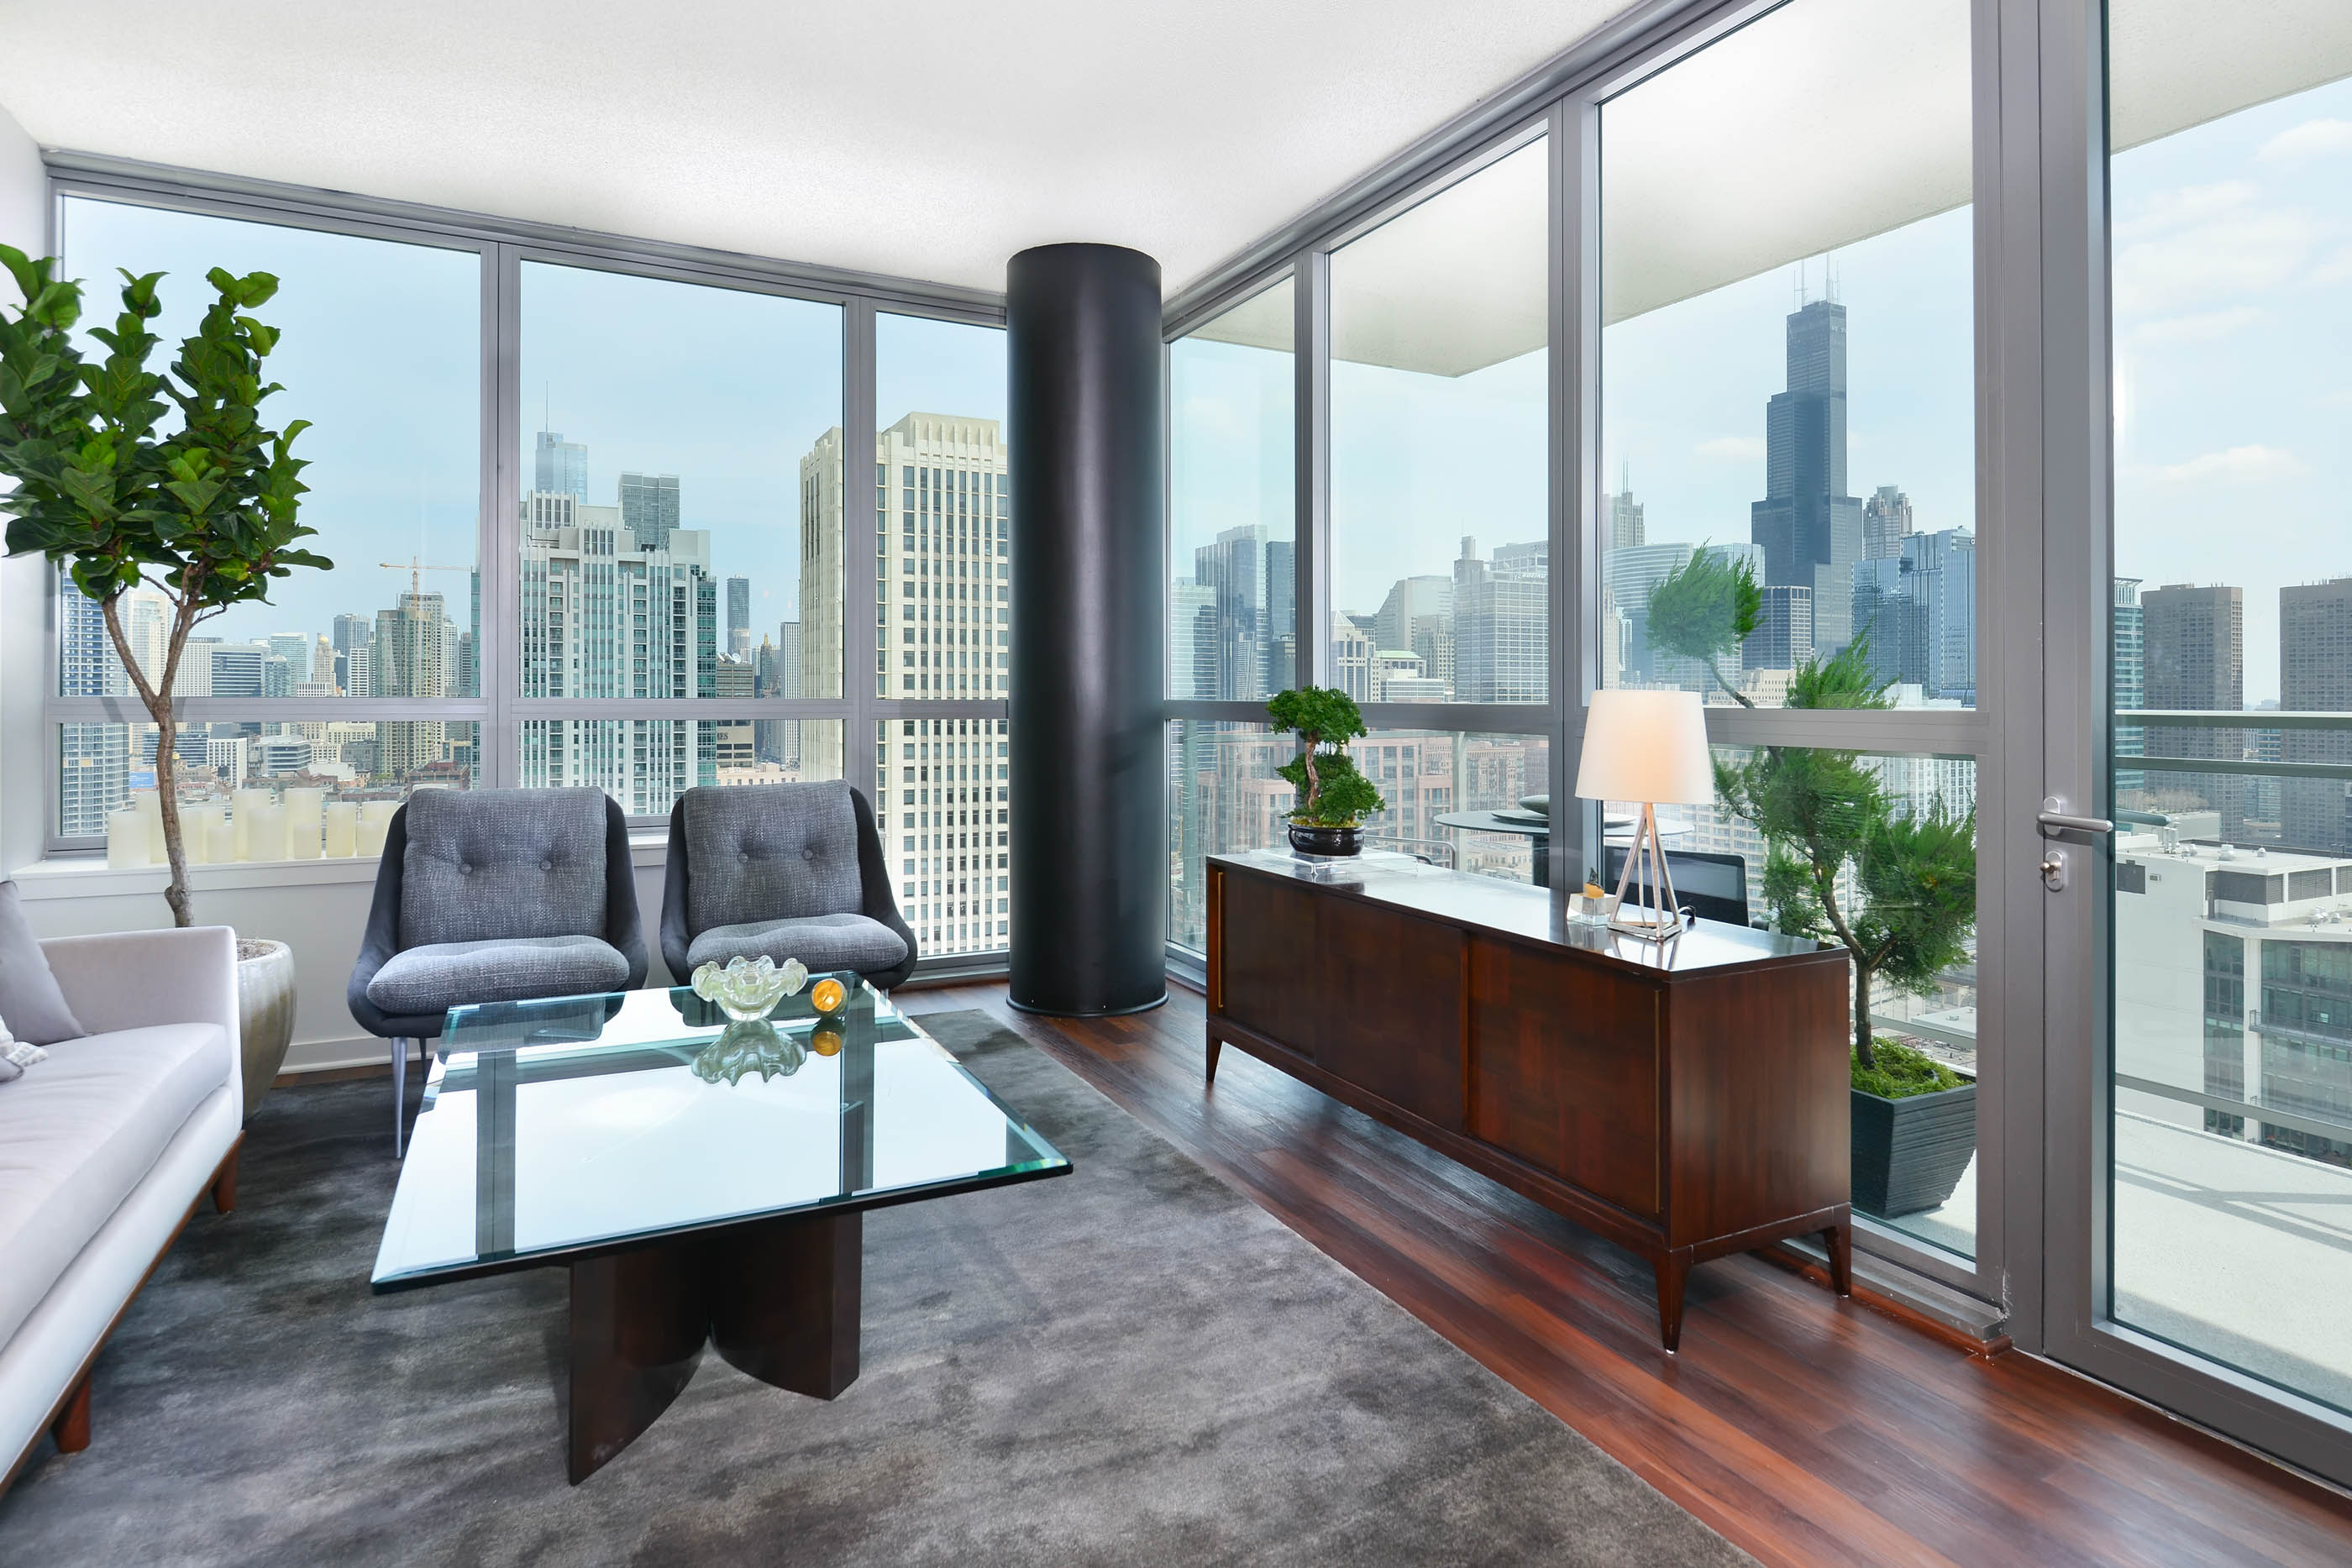 The. Chicago s best West Loop   Near West apartments   Two bedroom